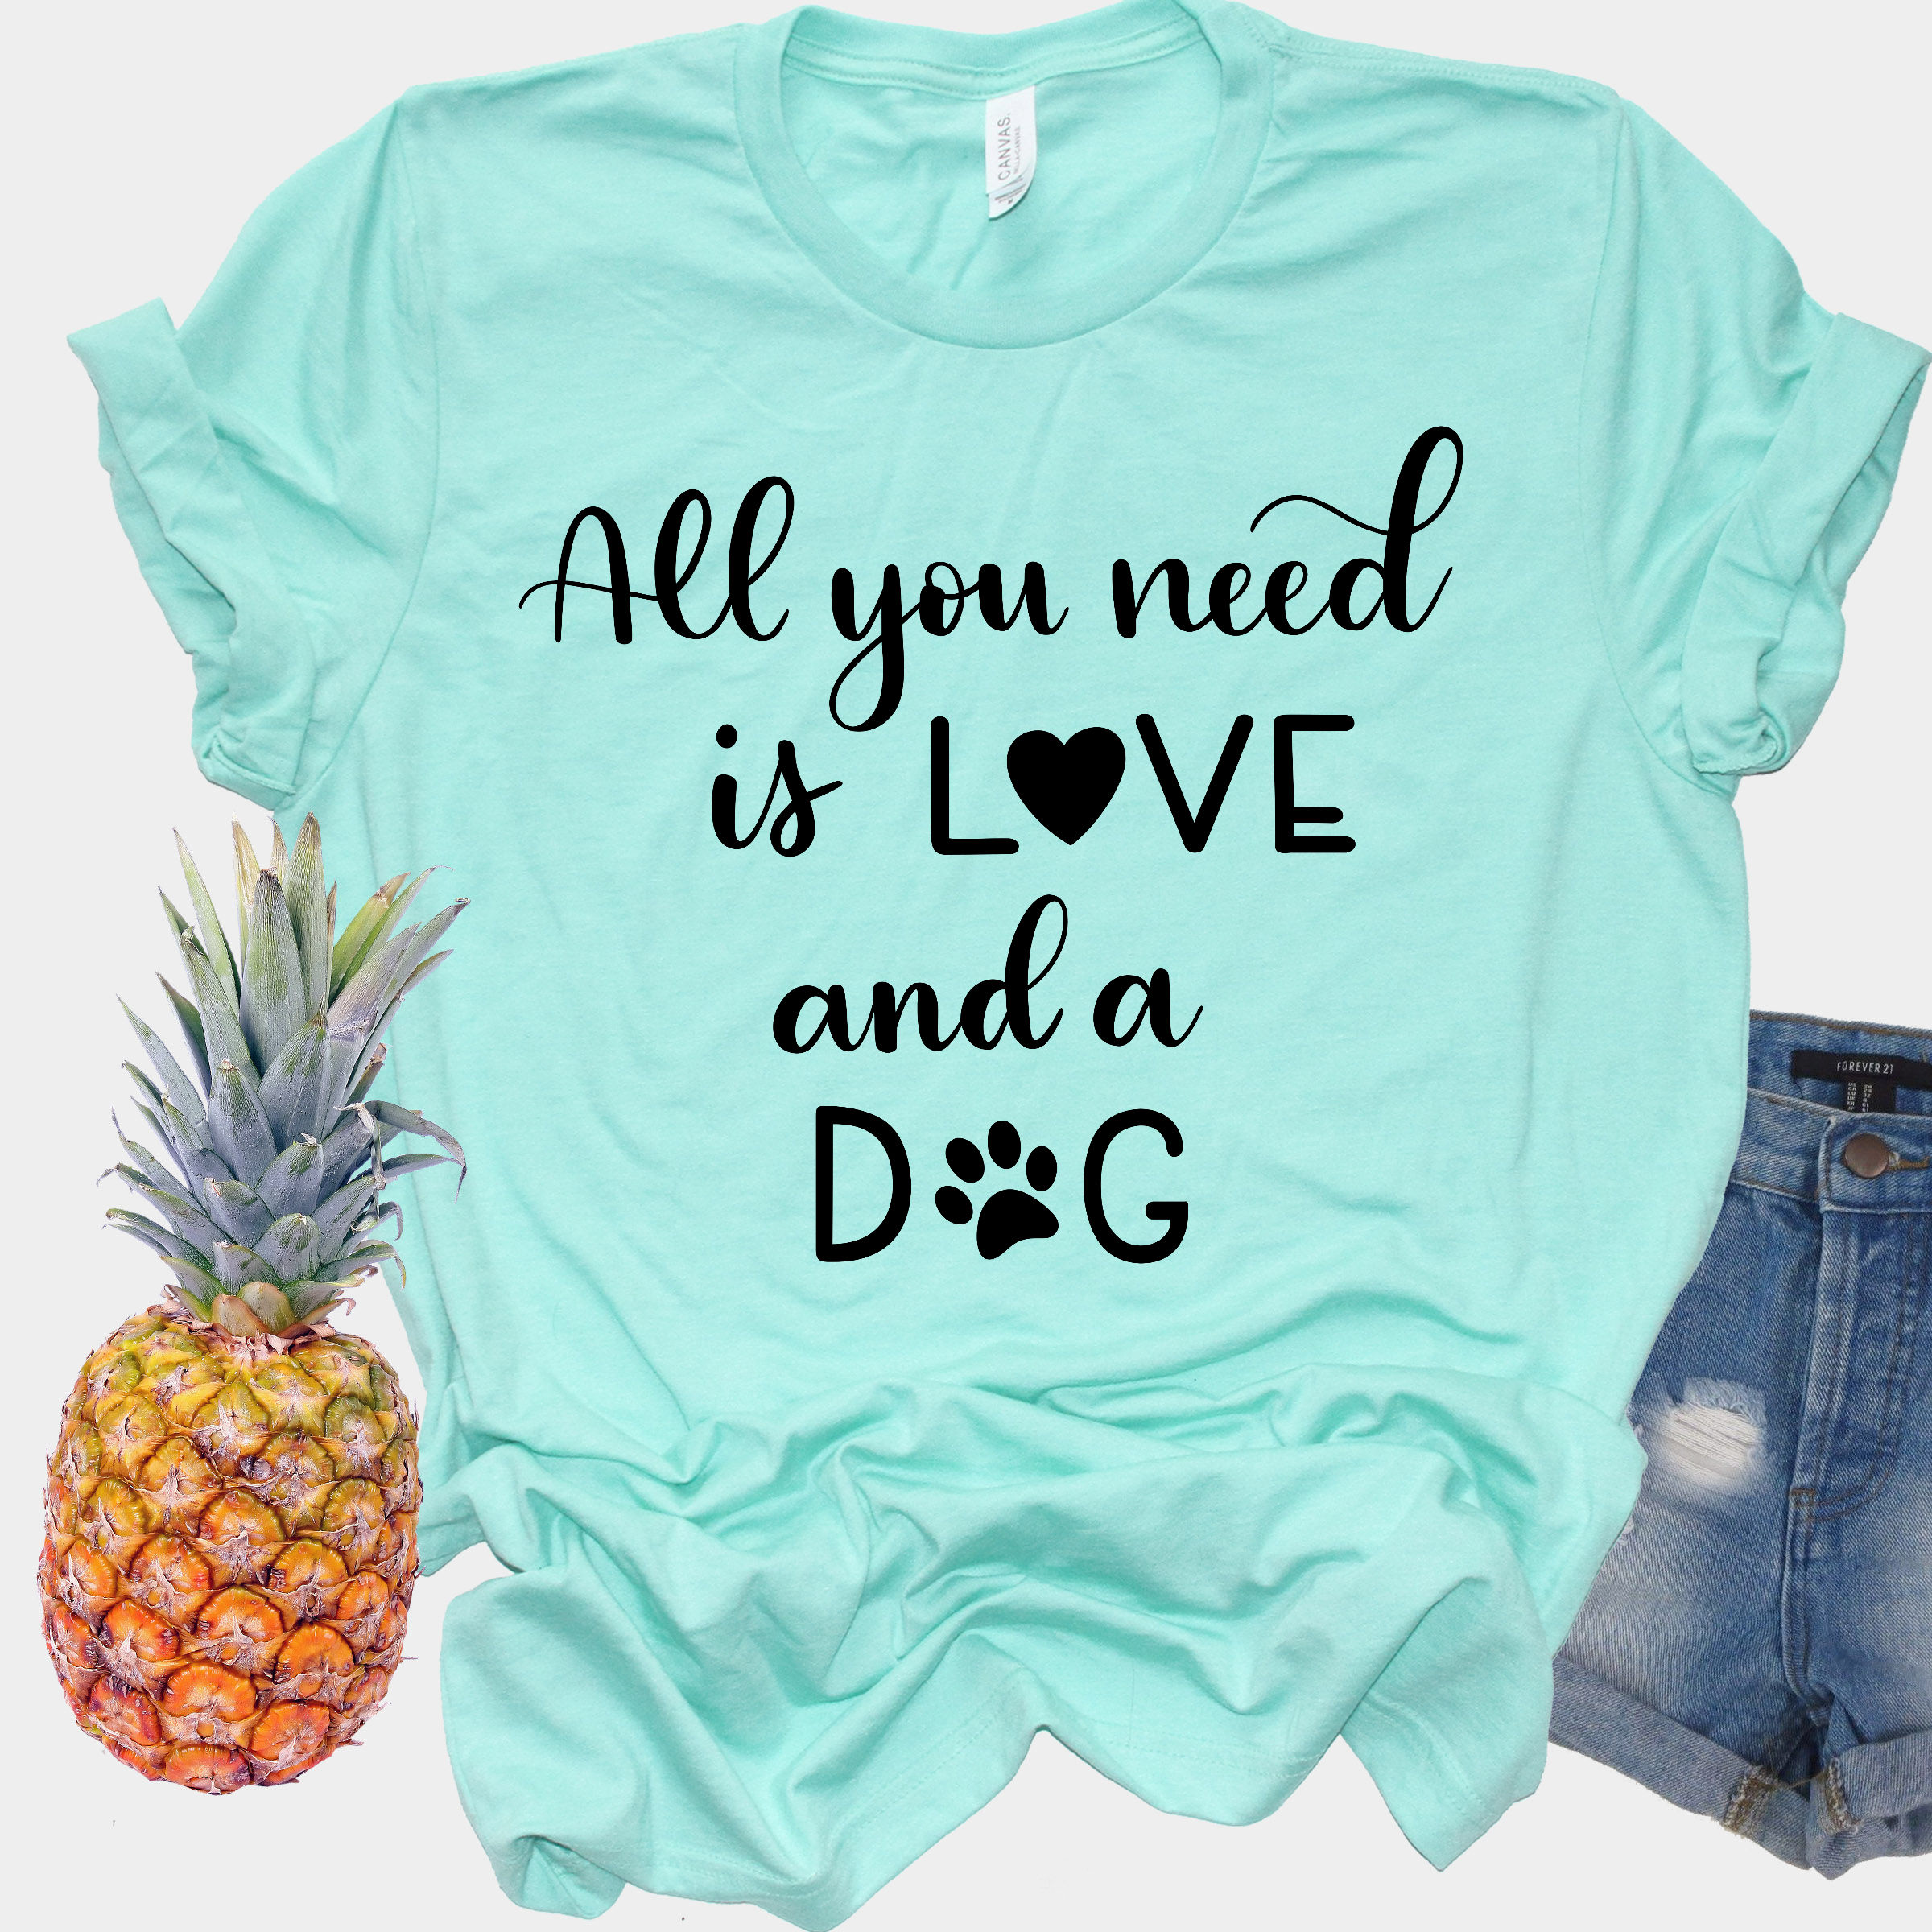 Dog SVG - All you need is love and a dog, Handlettered example image 2